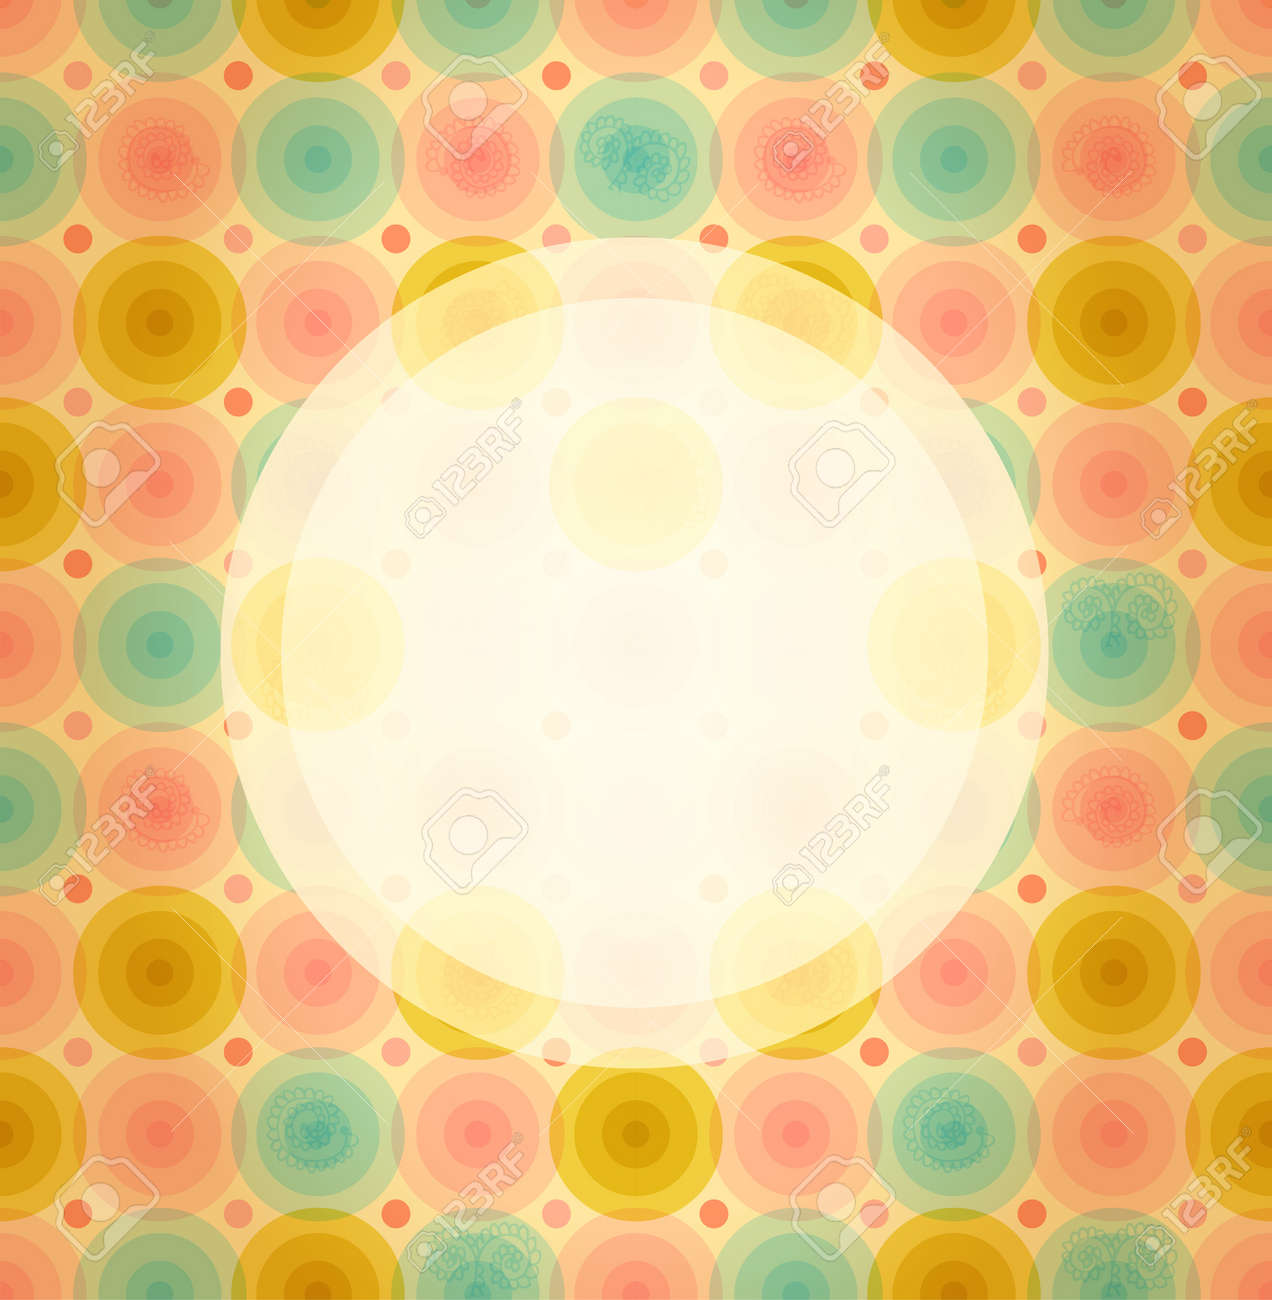 Round frame on cute baby background  Vintage banner on seamless pattern with circles Stock Vector - 21069736